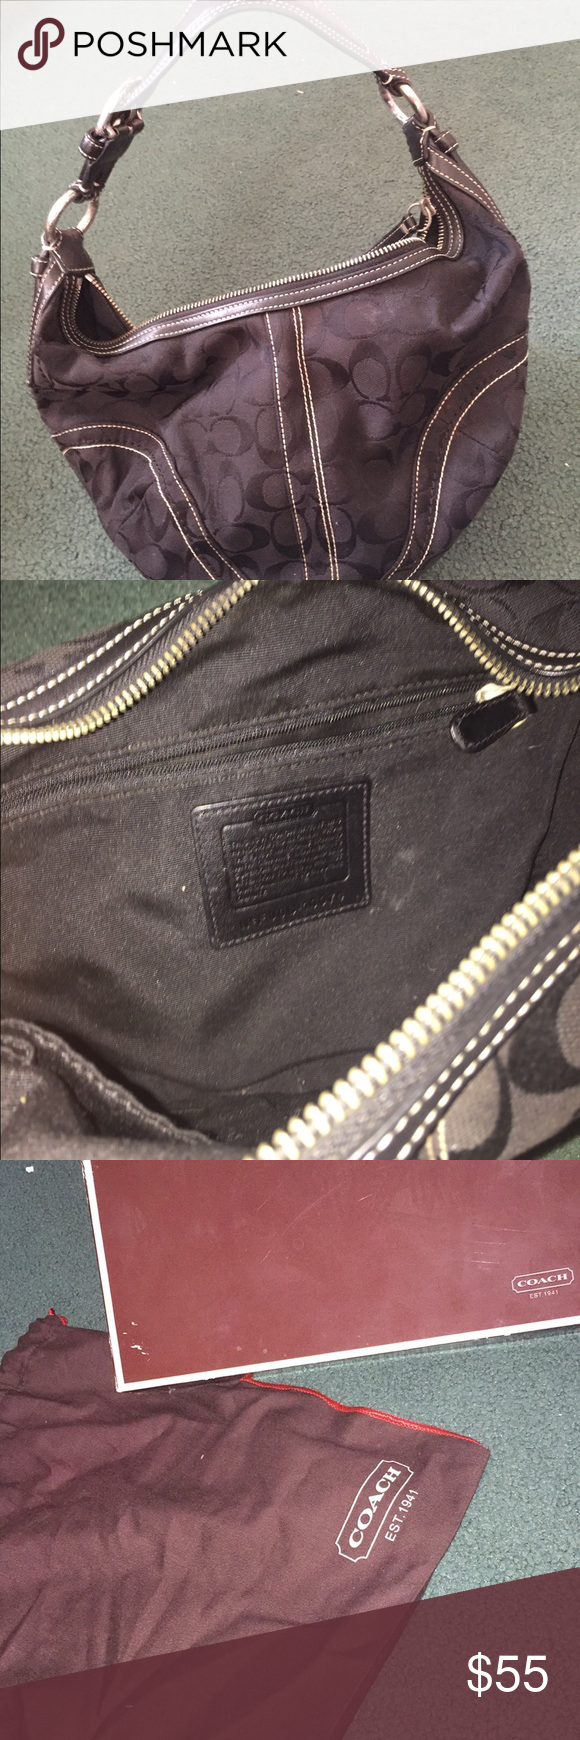 Coach purse Barely used still in good condition Coach Bags Hobos